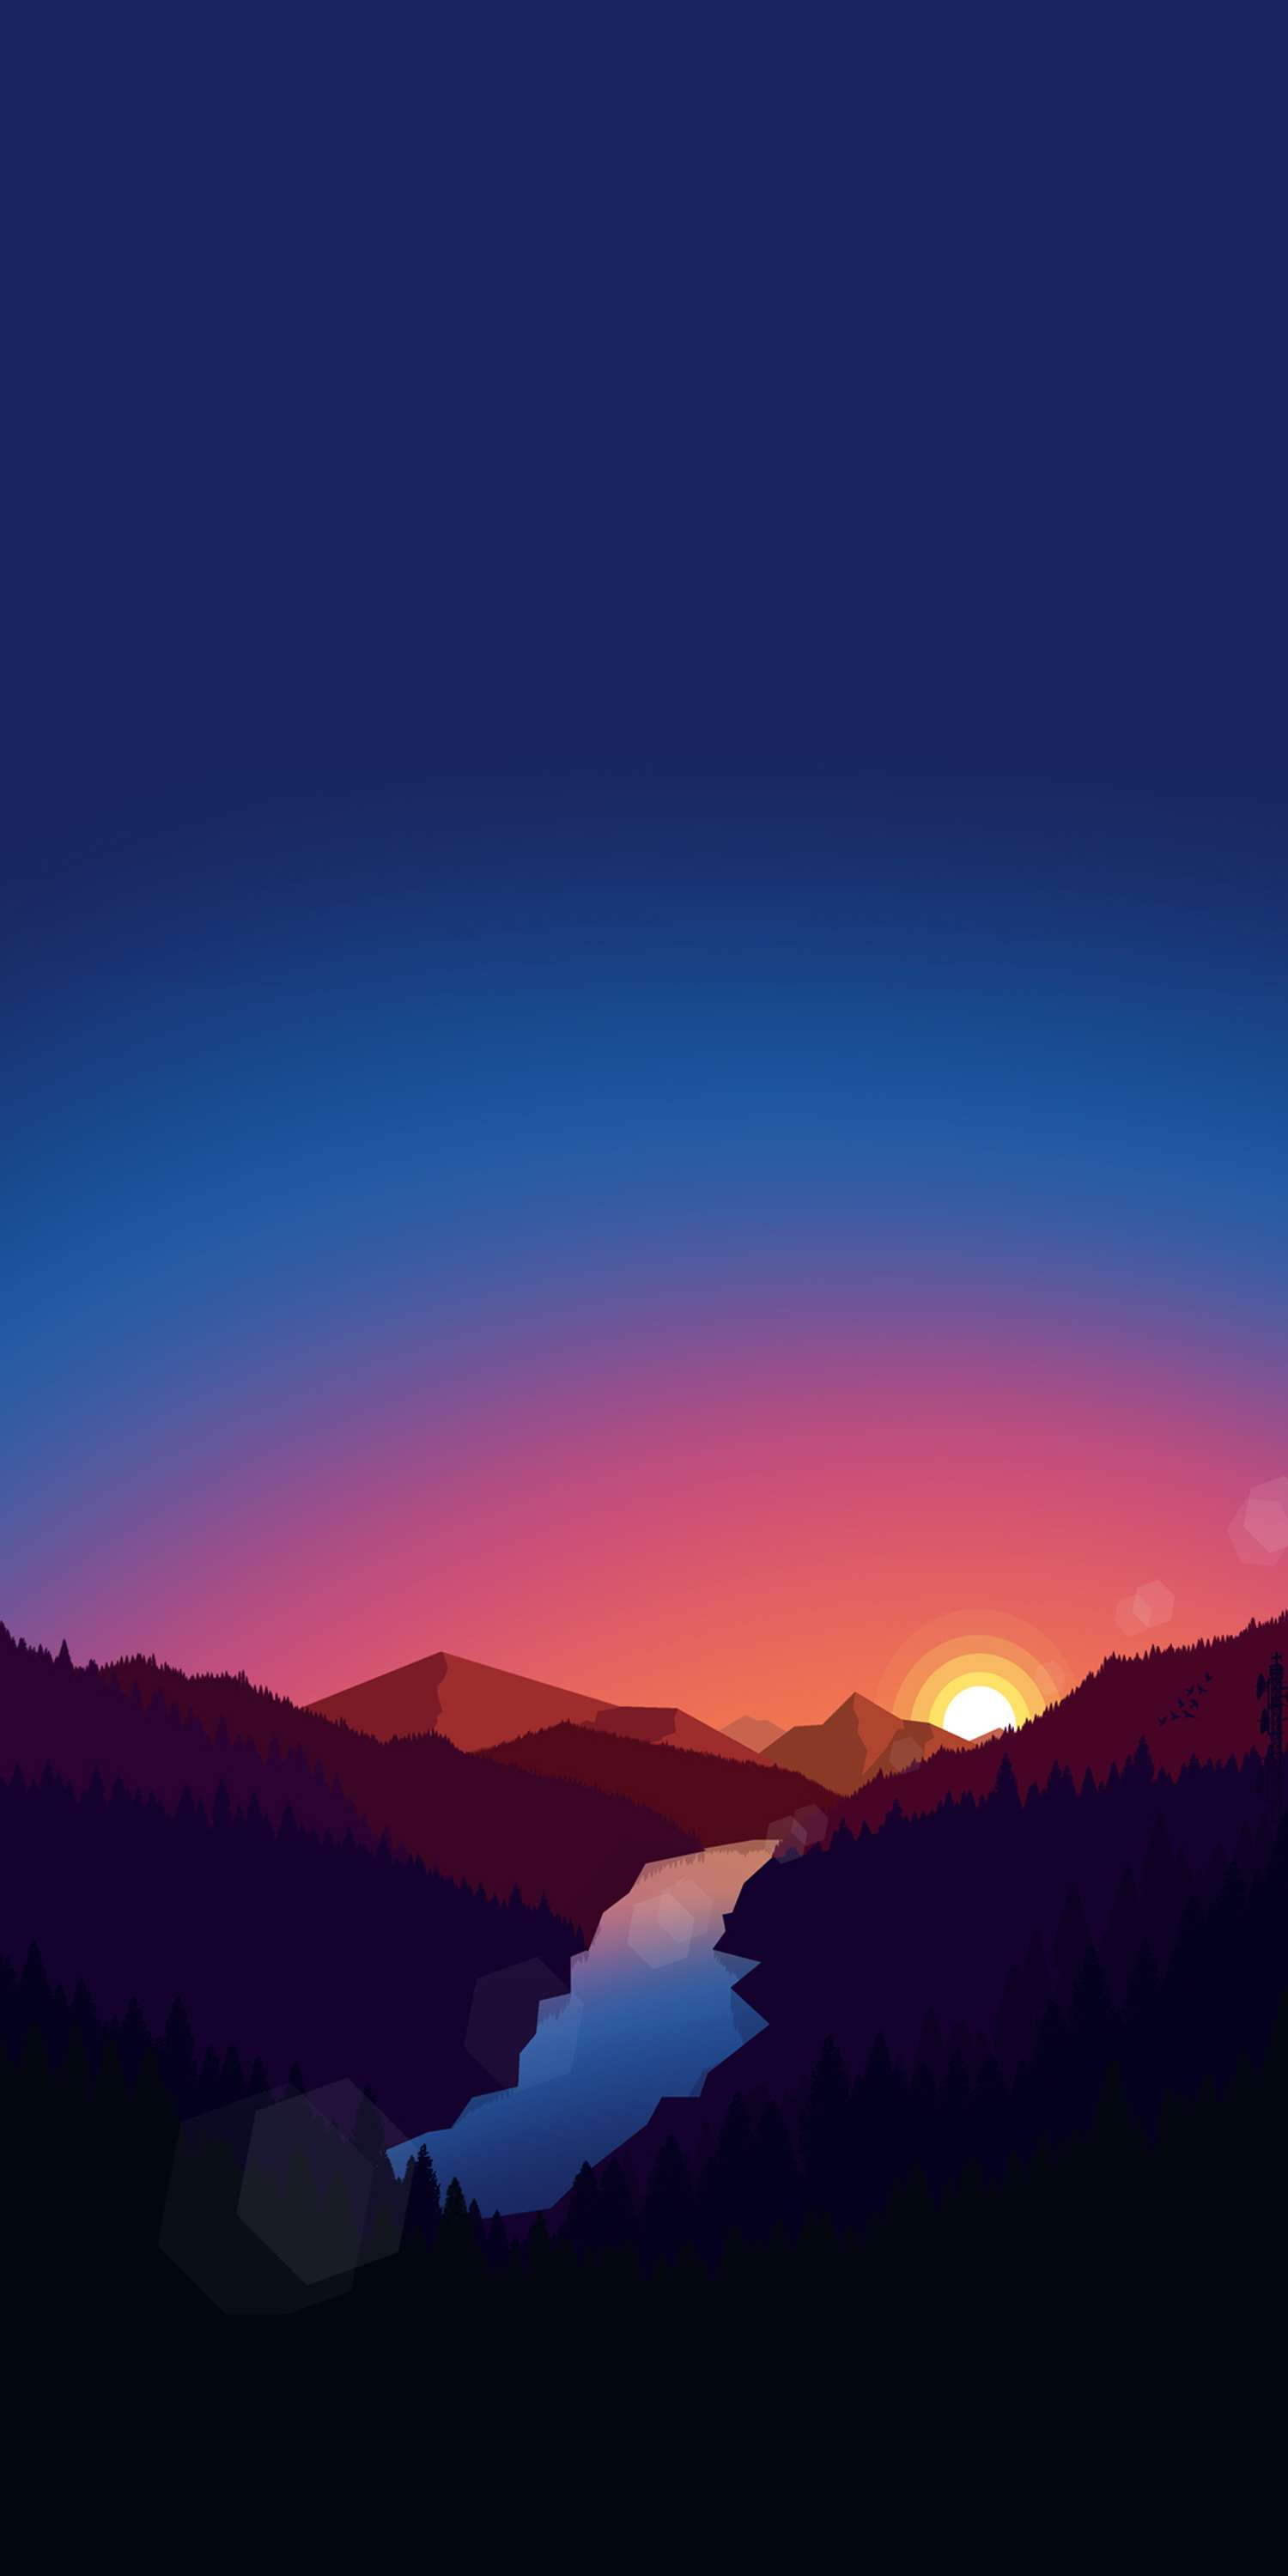 Sunrise View Minimal Nature iPhone Wallpaper